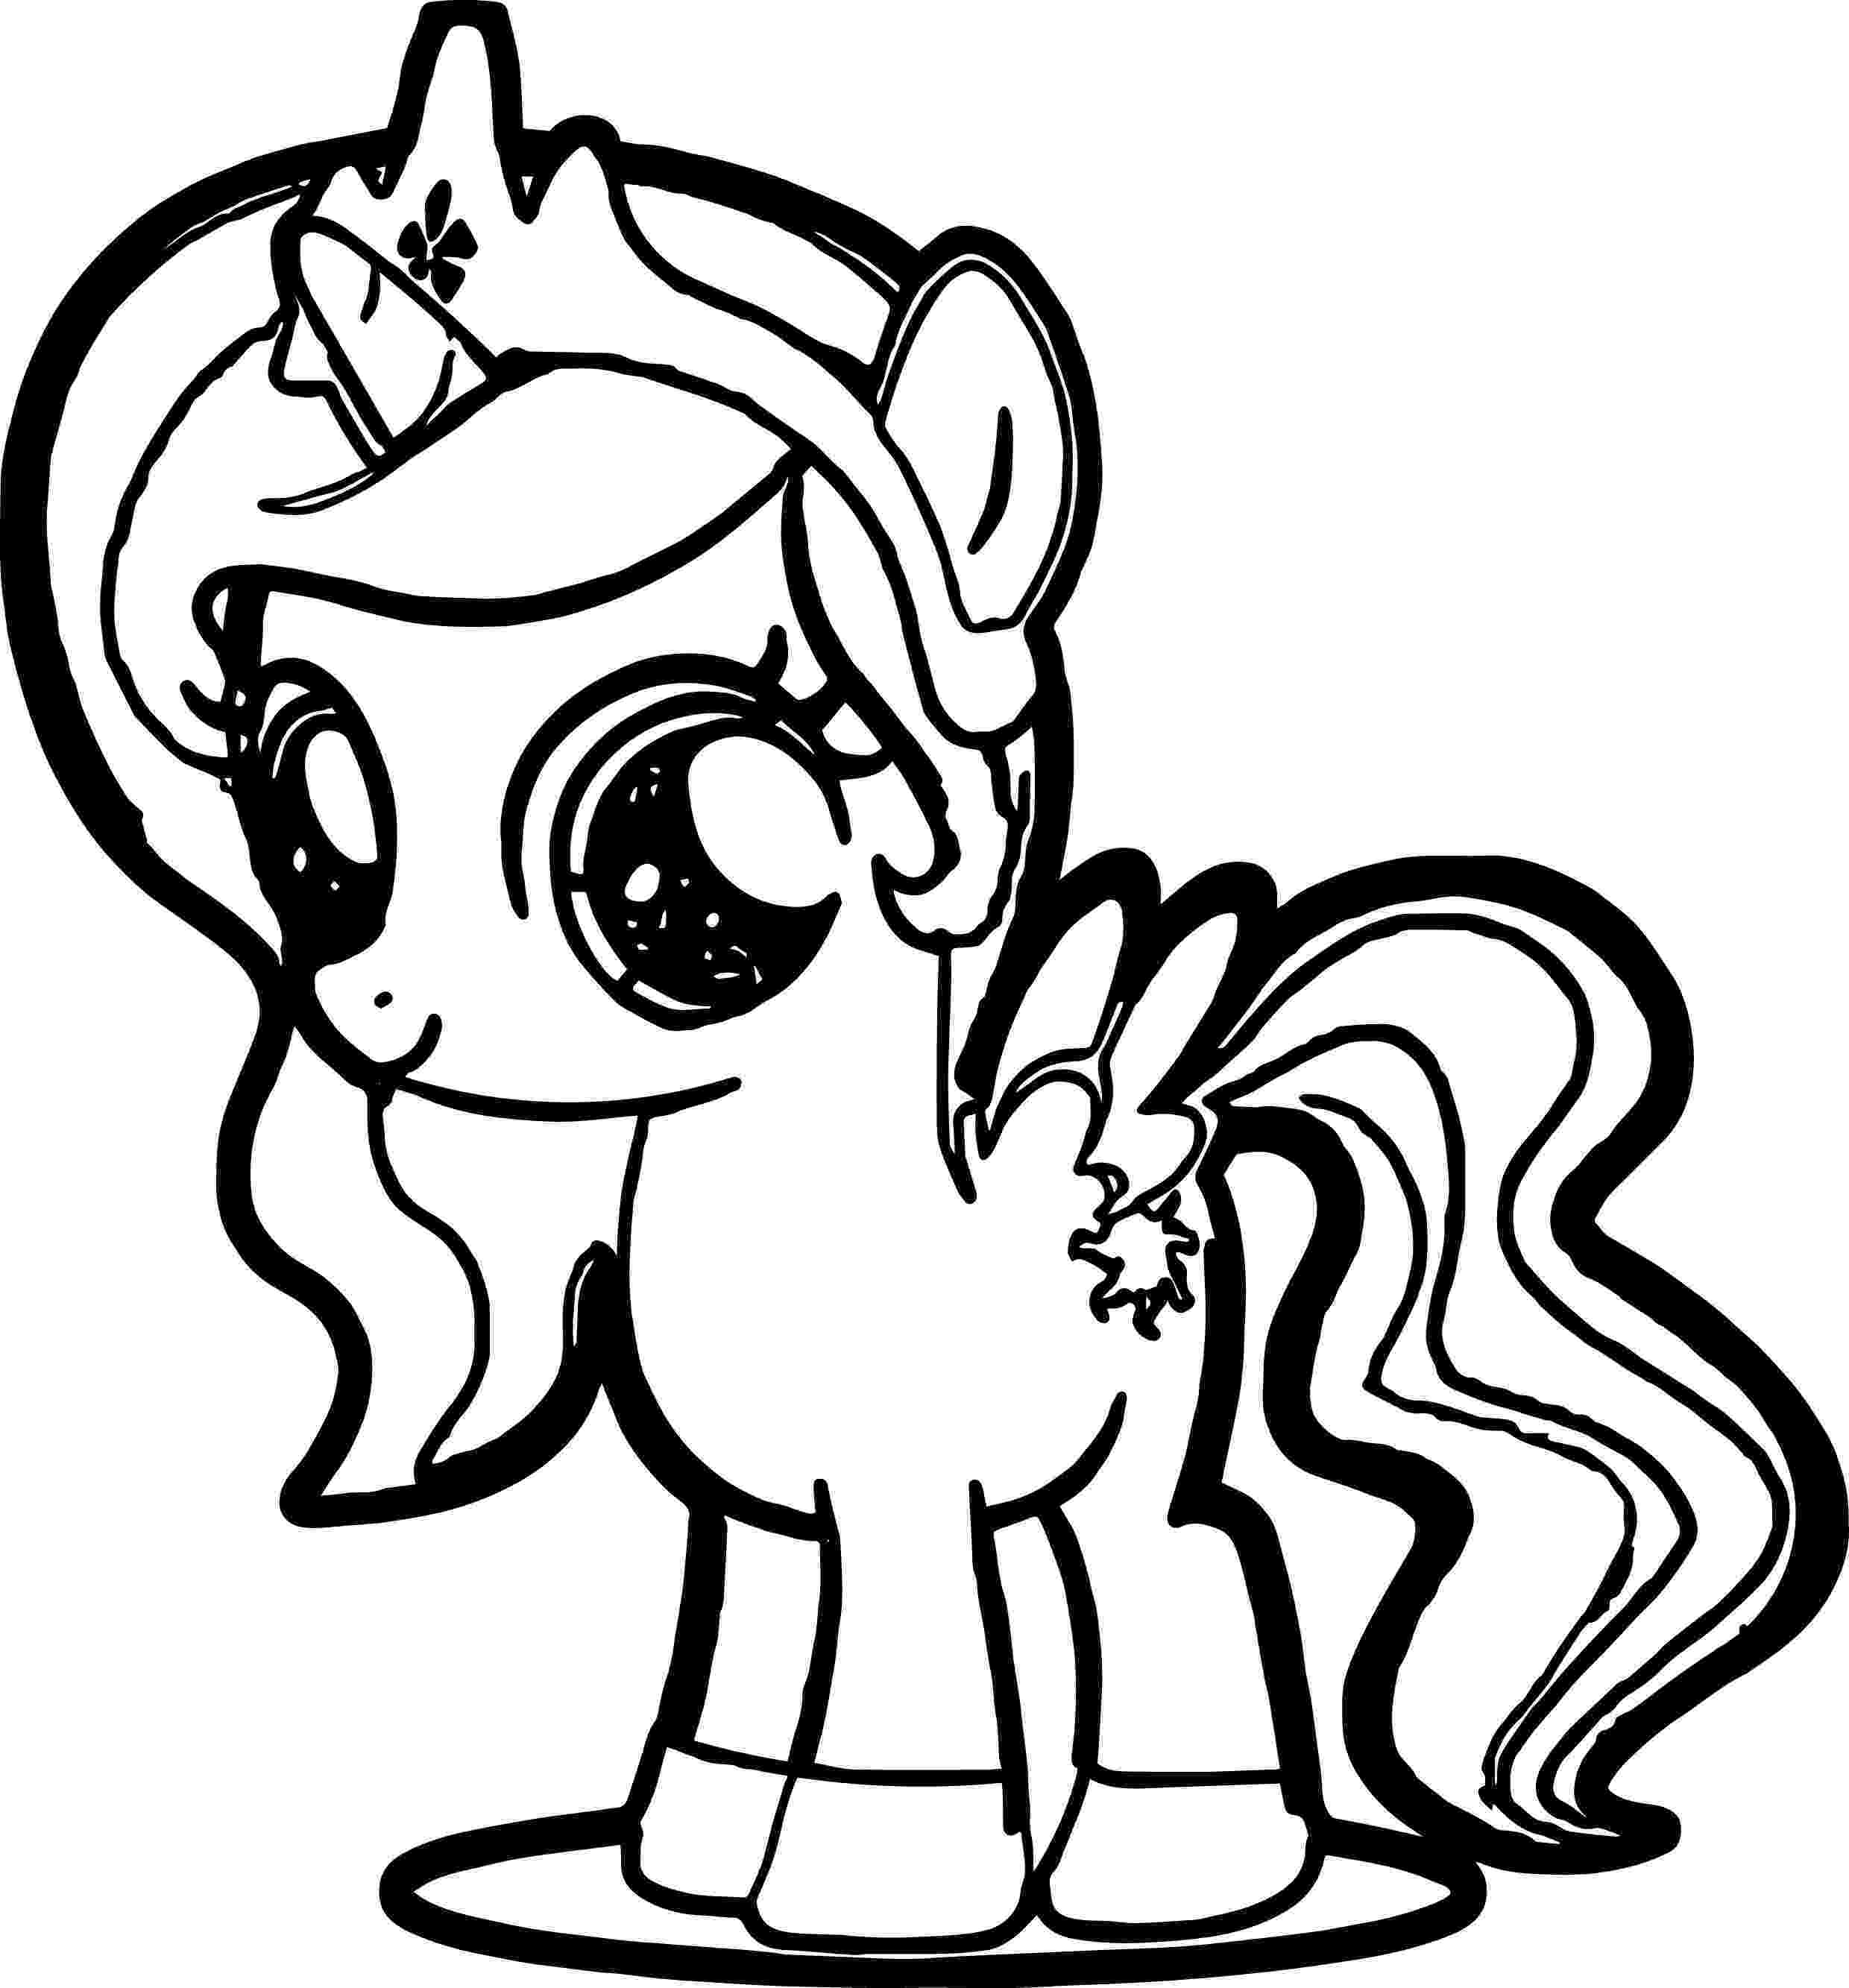 coloring pages little pony my little pony christmas coloring pages to download and coloring pages pony little